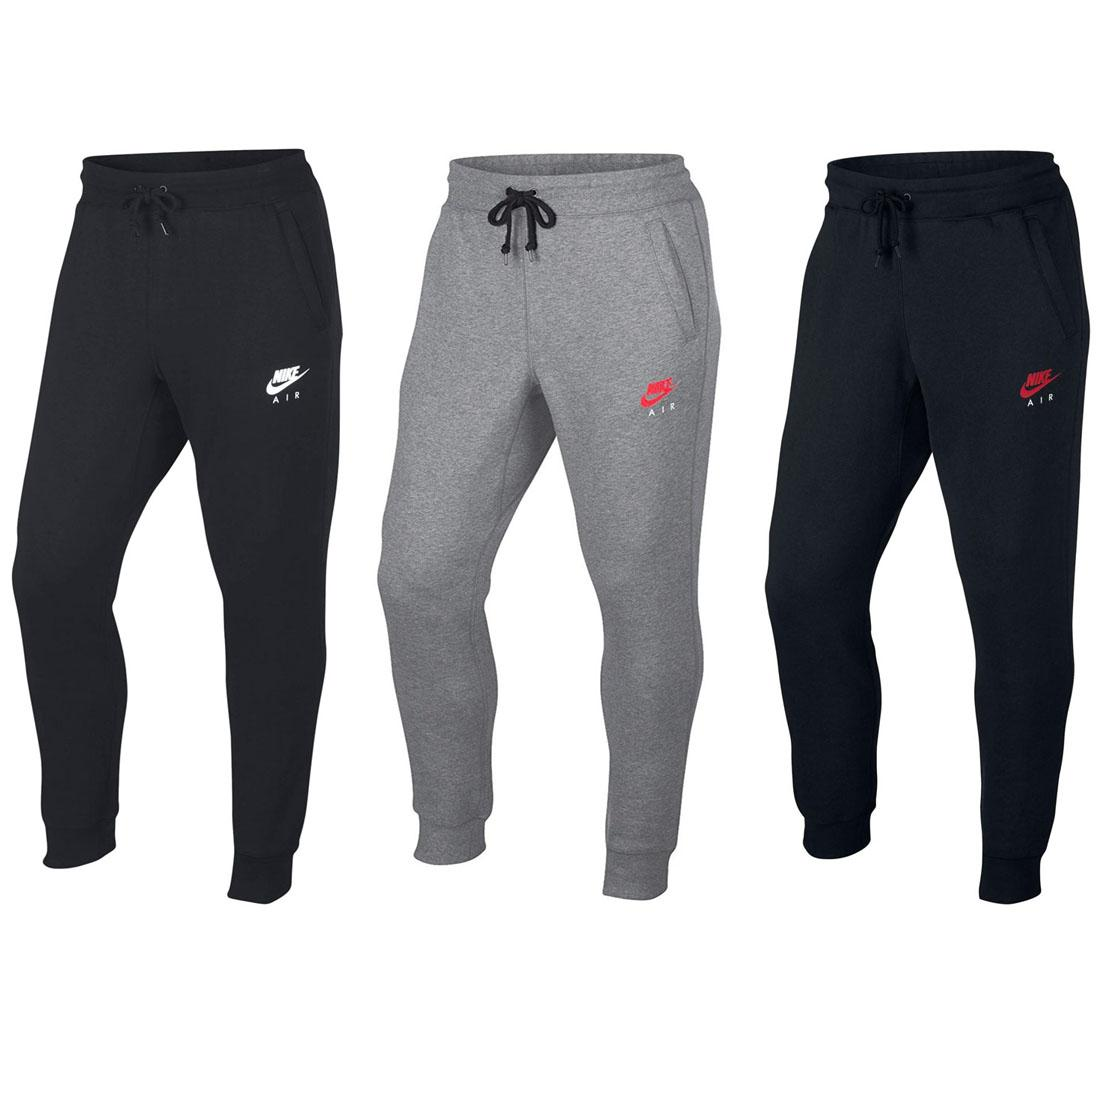 super cheap fresh styles new high quality Details about Nike Air NSW Mens Fleece Pants Black Grey Skinny Joggers Slim  Tracksuit Bottoms